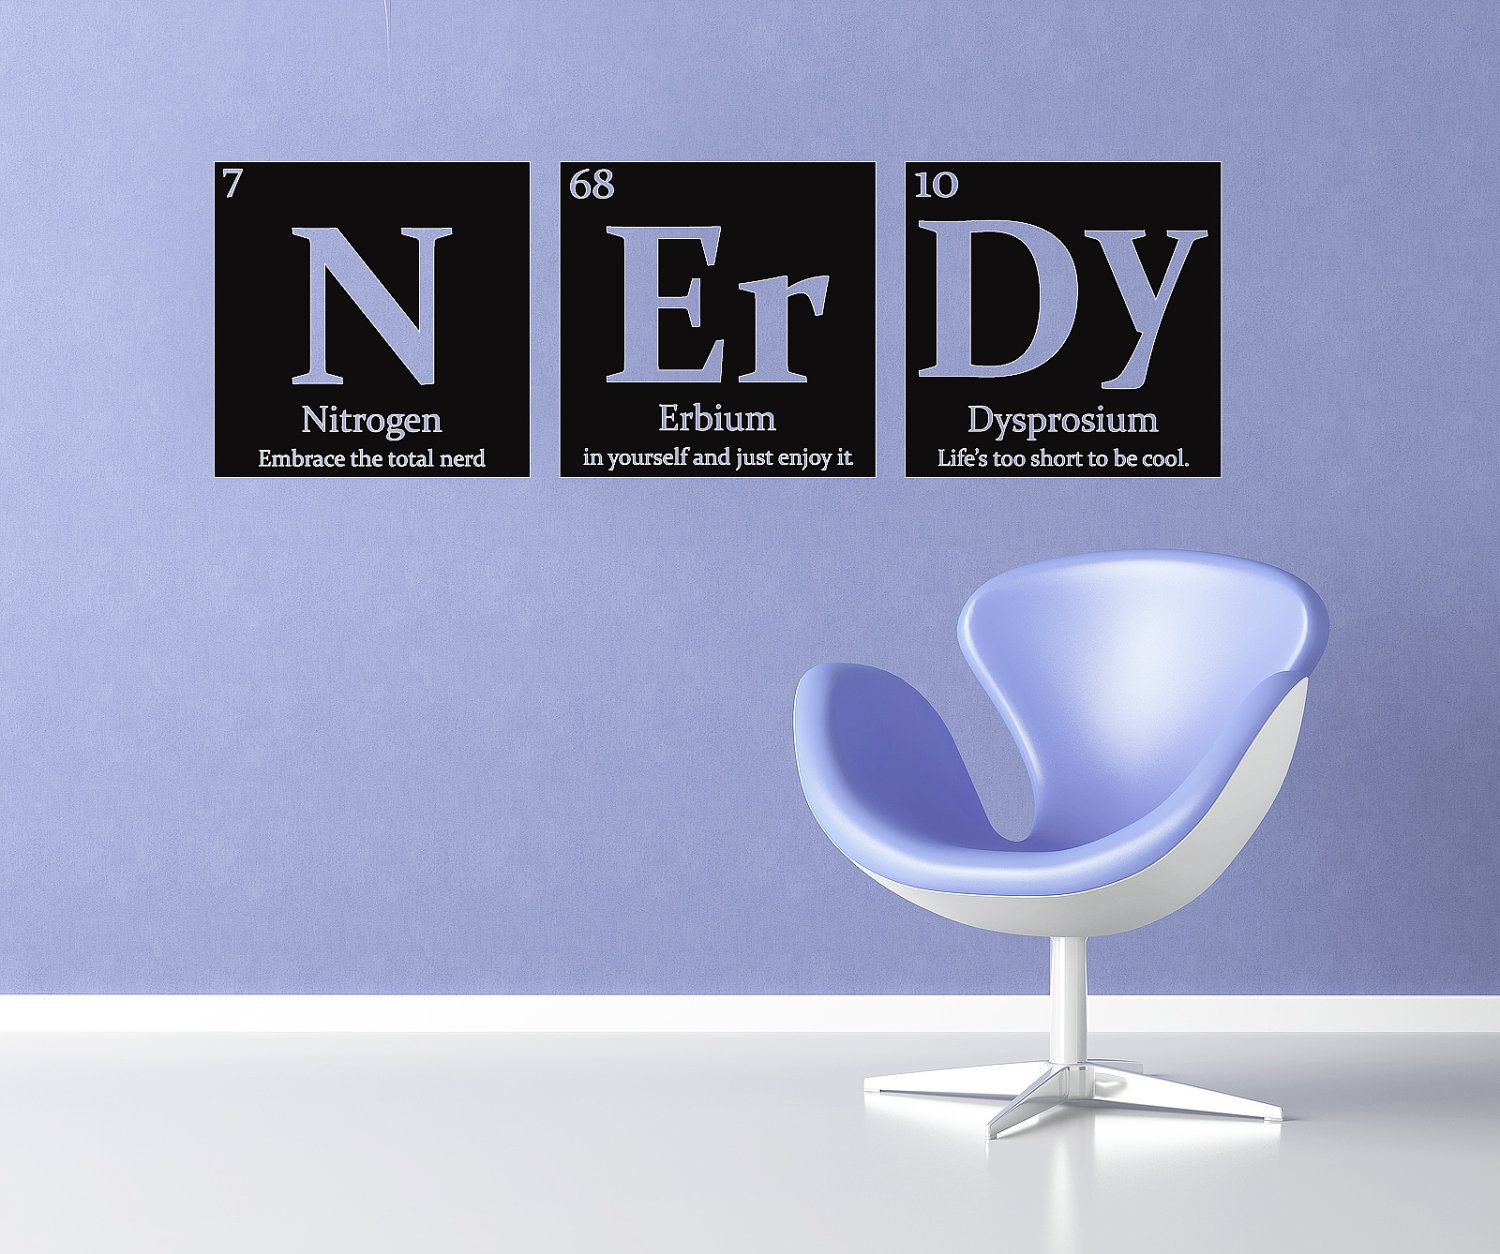 Periodic Table Of Elements NERDY Vinyl Wall Decal With Quote - Vinyl wall decals home party